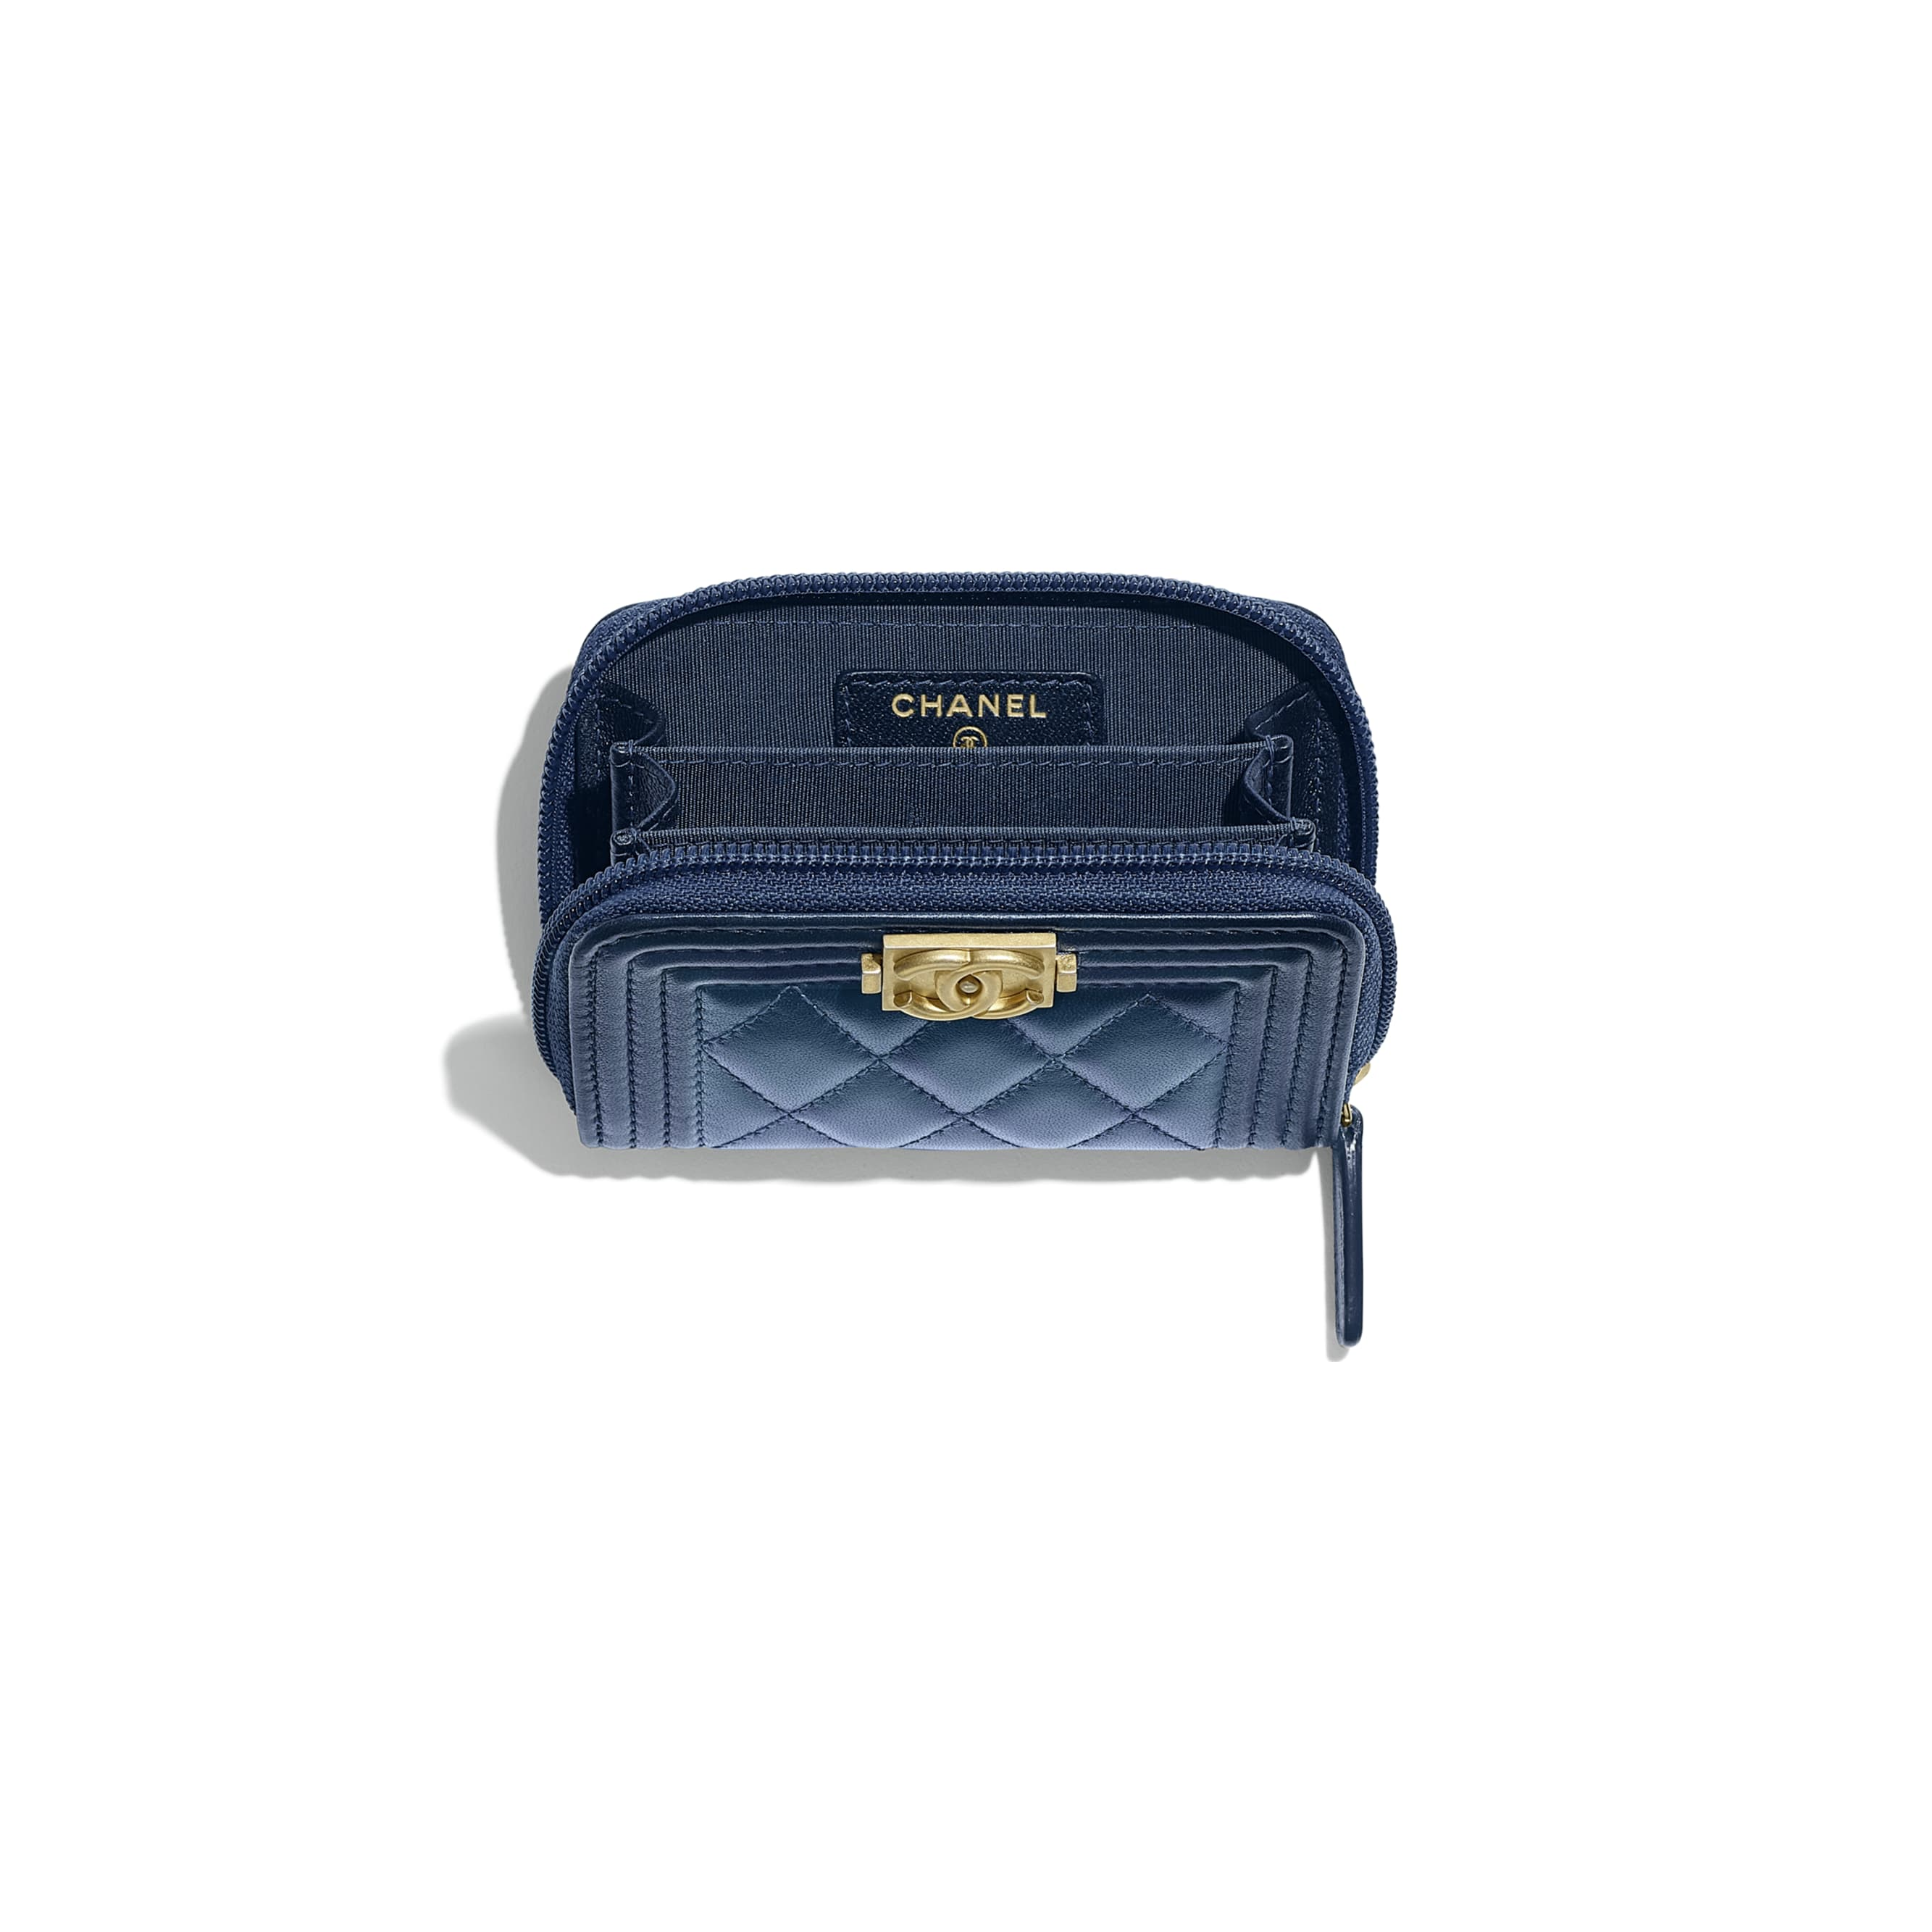 BOY CHANEL Zipped Coin Purse - Navy Blue - Metallic Lambskin & Gold Metal - CHANEL - Other view - see standard sized version